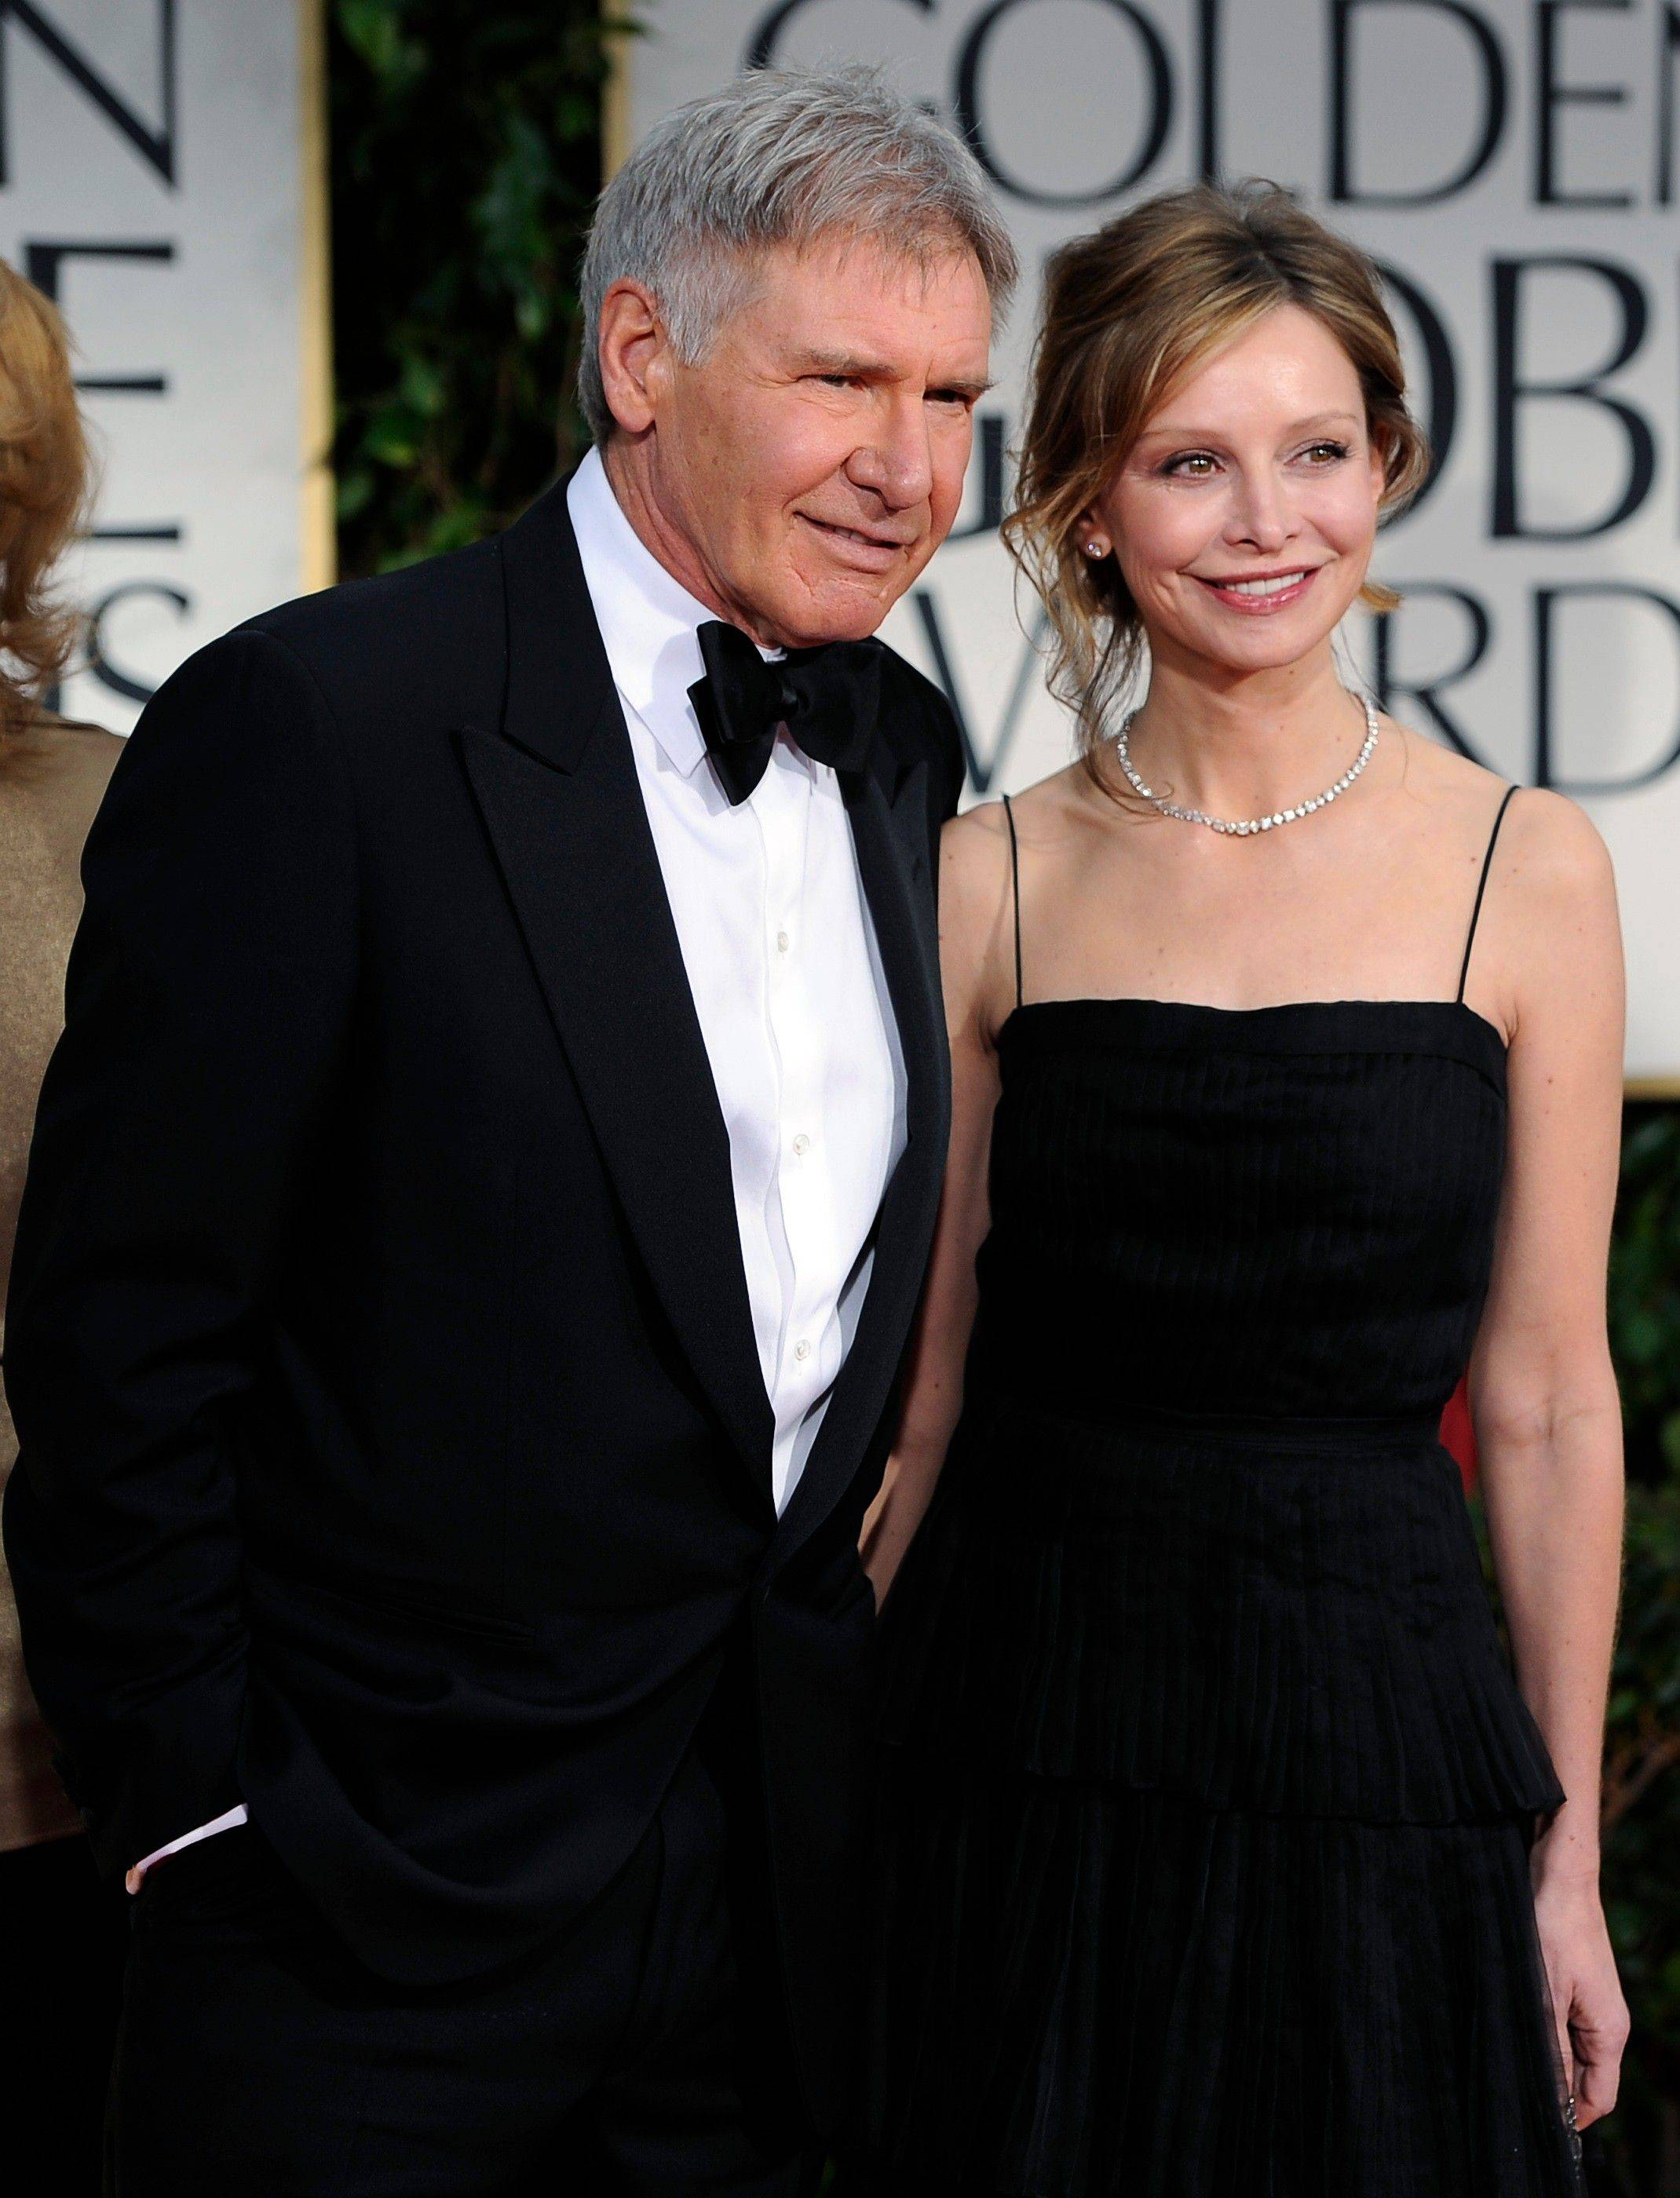 Harrison Ford, left, and Calista Flockhart arrive at the 69th Annual Golden Globe Awards.